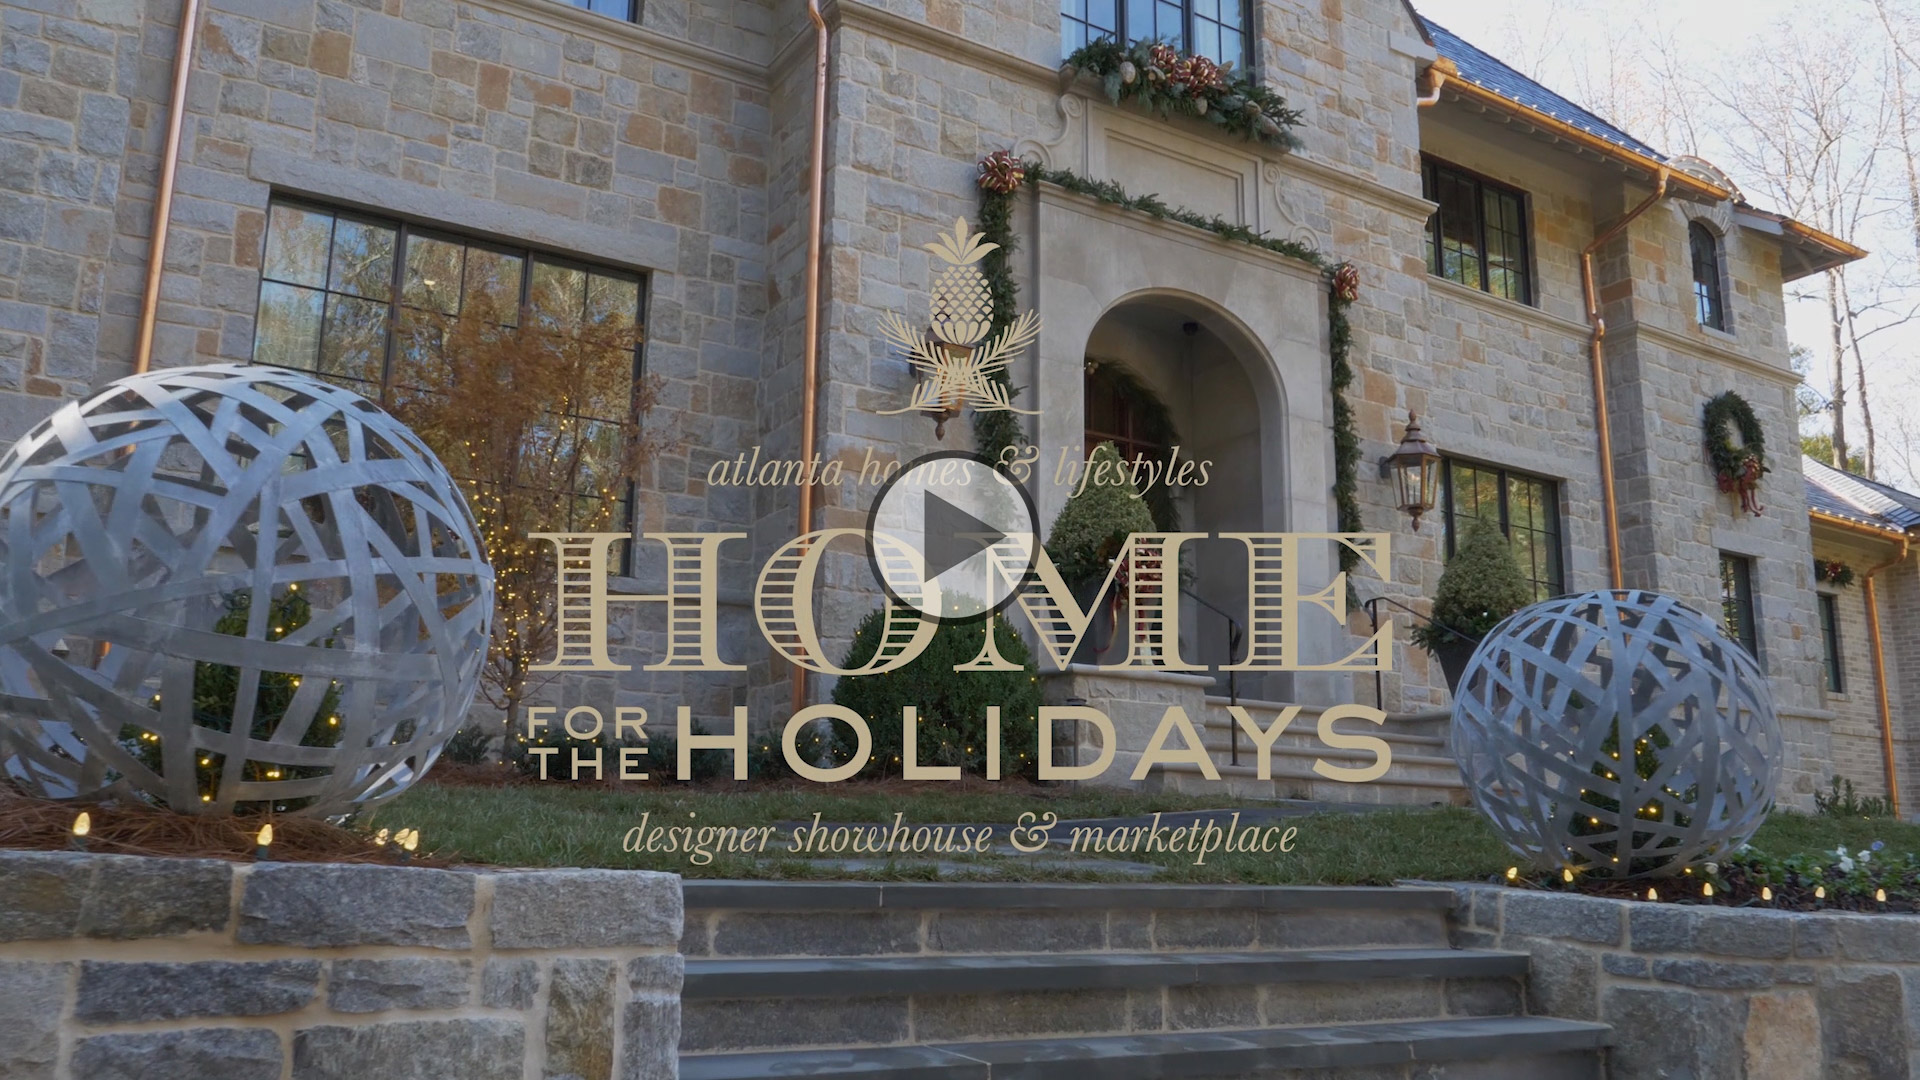 2017 AH&L Home for the Holidays Showhouse